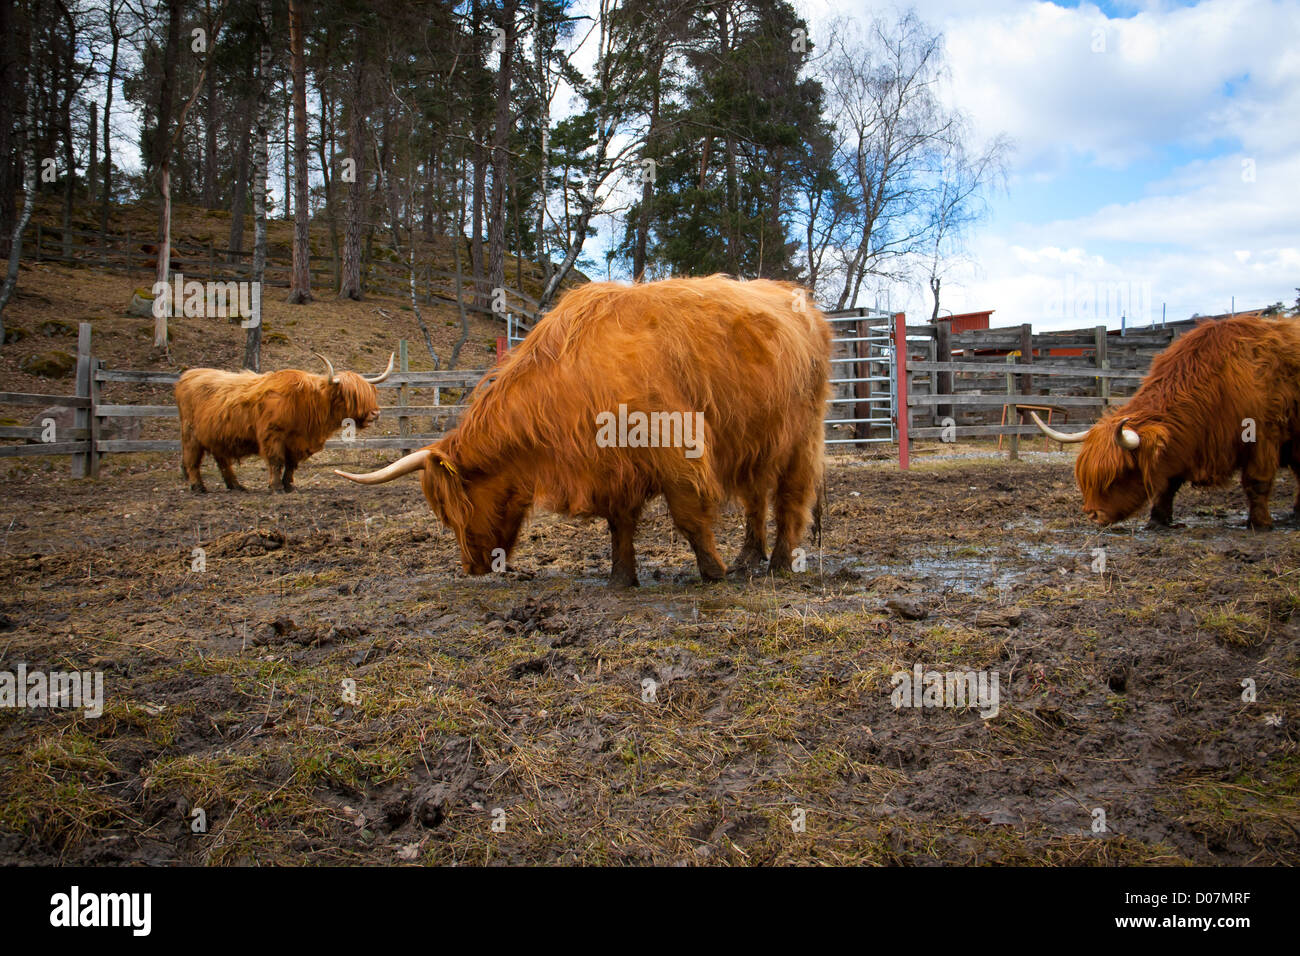 Some long horned cows eating on a field - Stock Image